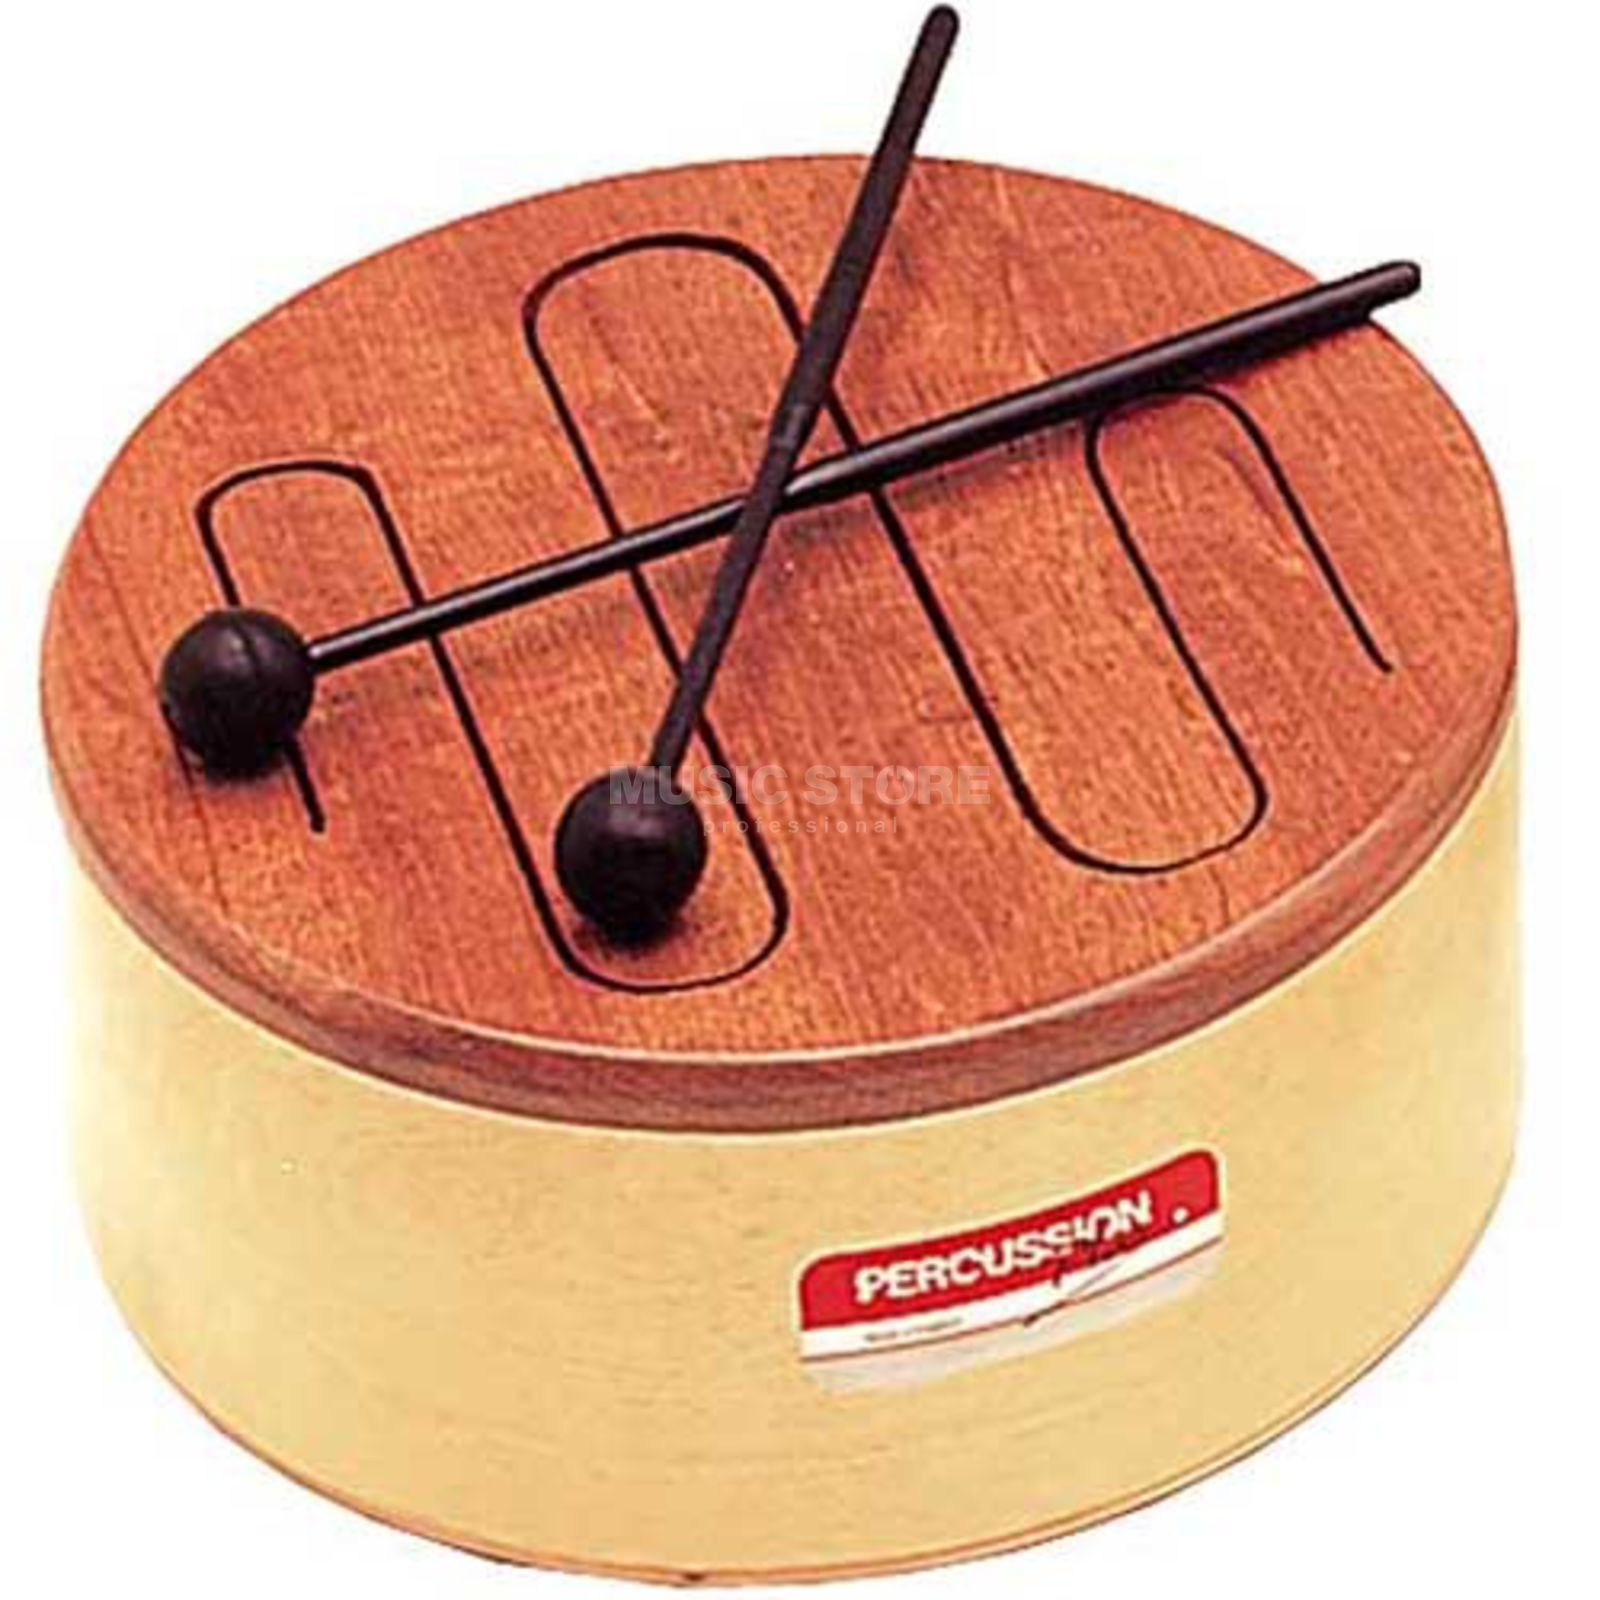 Percussion Plus PP563 Snake Drum, inkl. Beater Produktbild